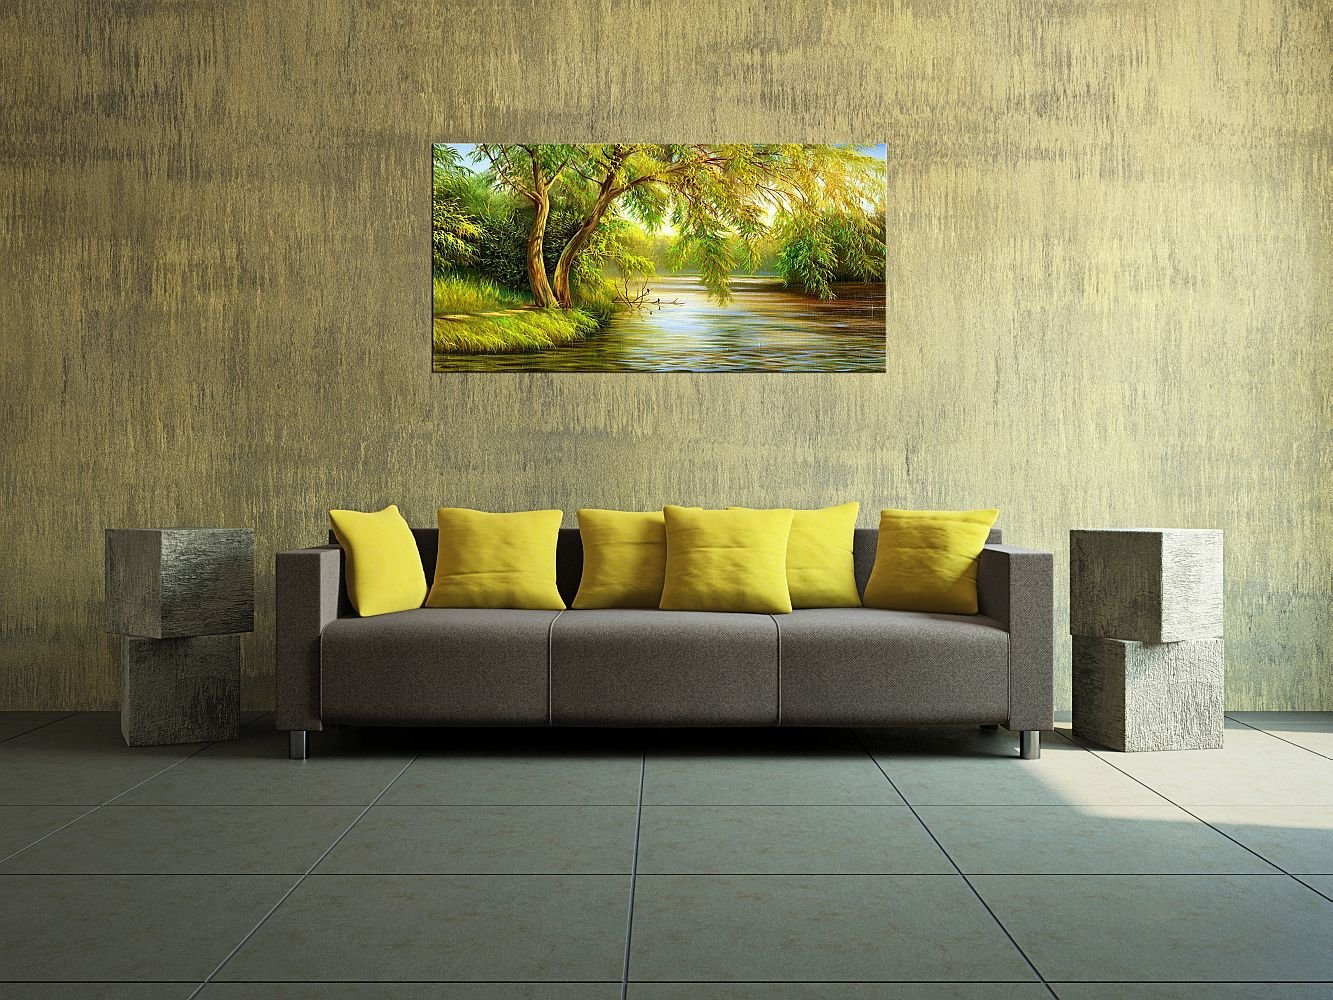 Amazon.com: Startonight Canvas Wall Art Country Landscape Willow ...